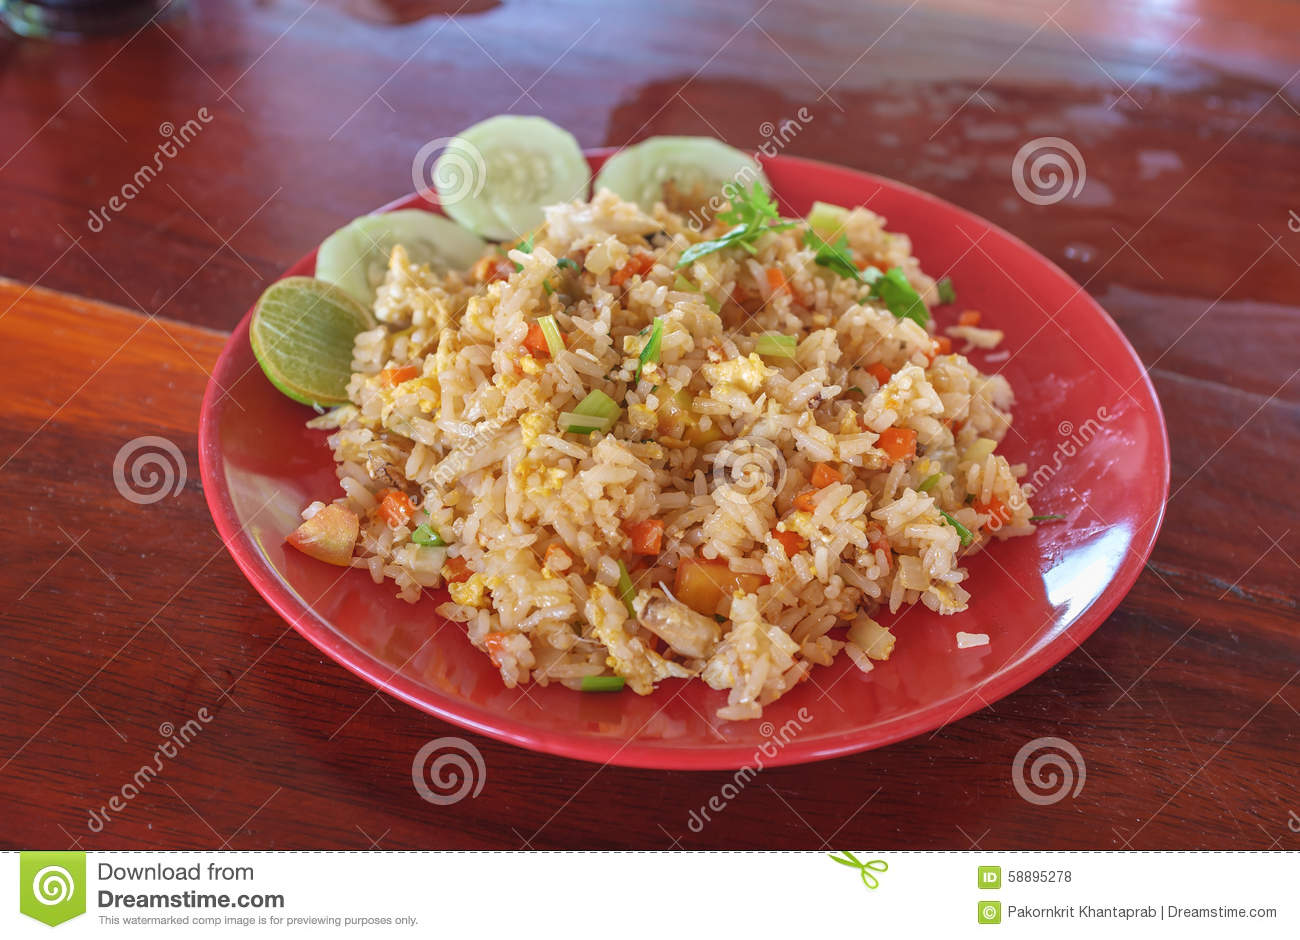 Thai style stir fried rice in red plate.